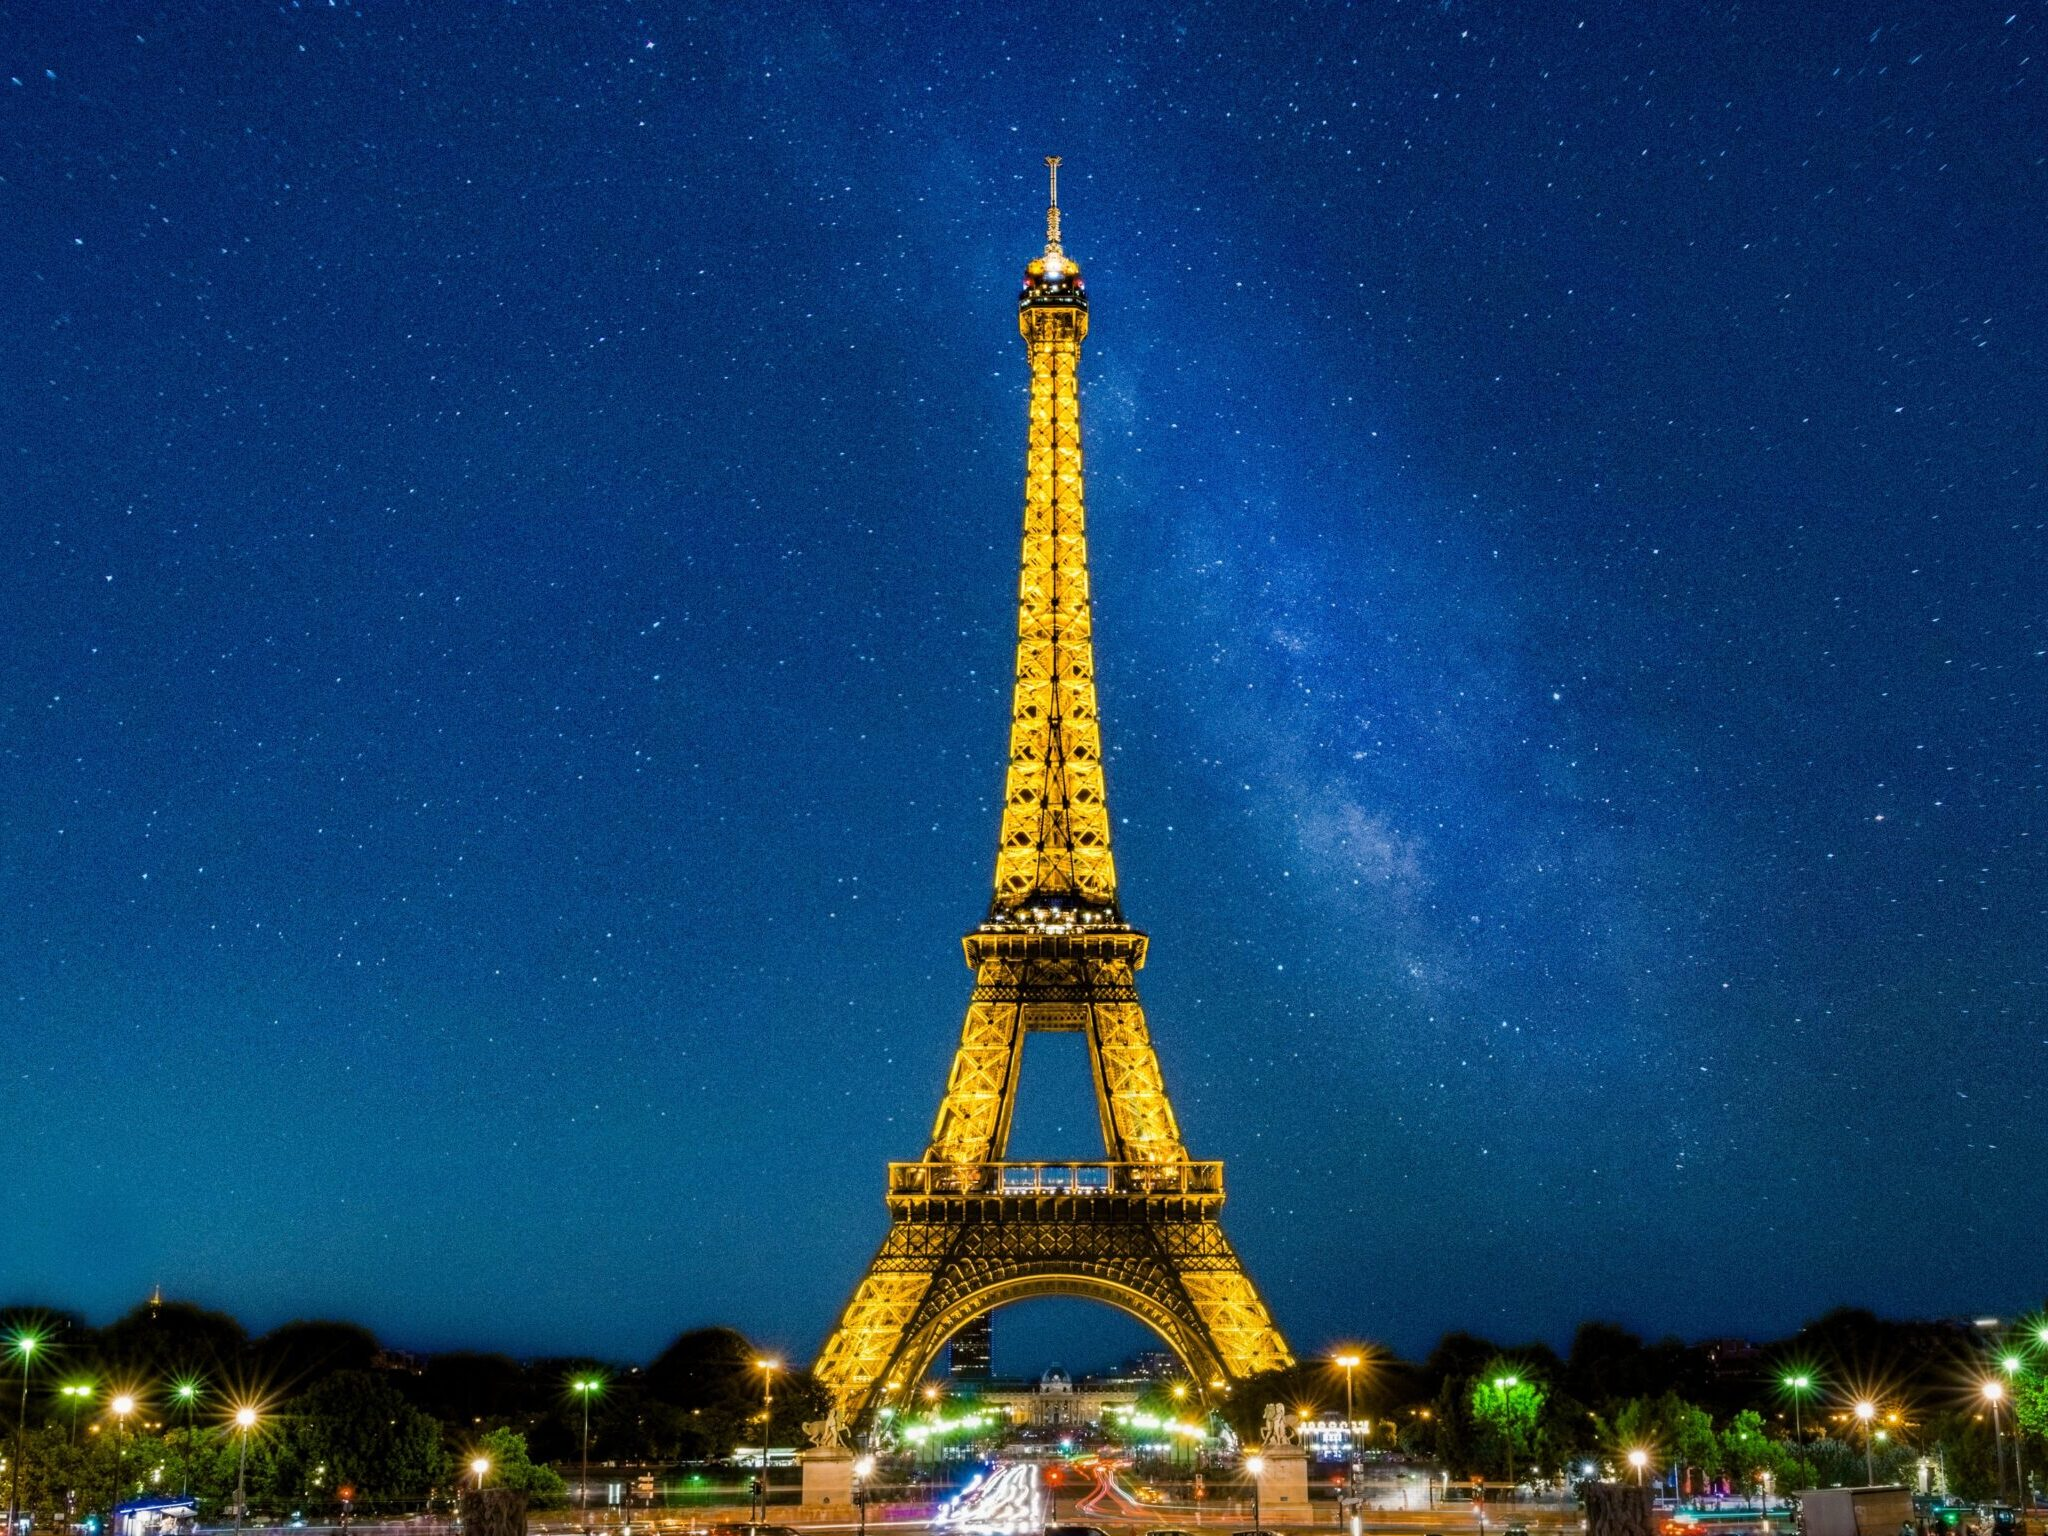 eiffel tower under blue sky during night time